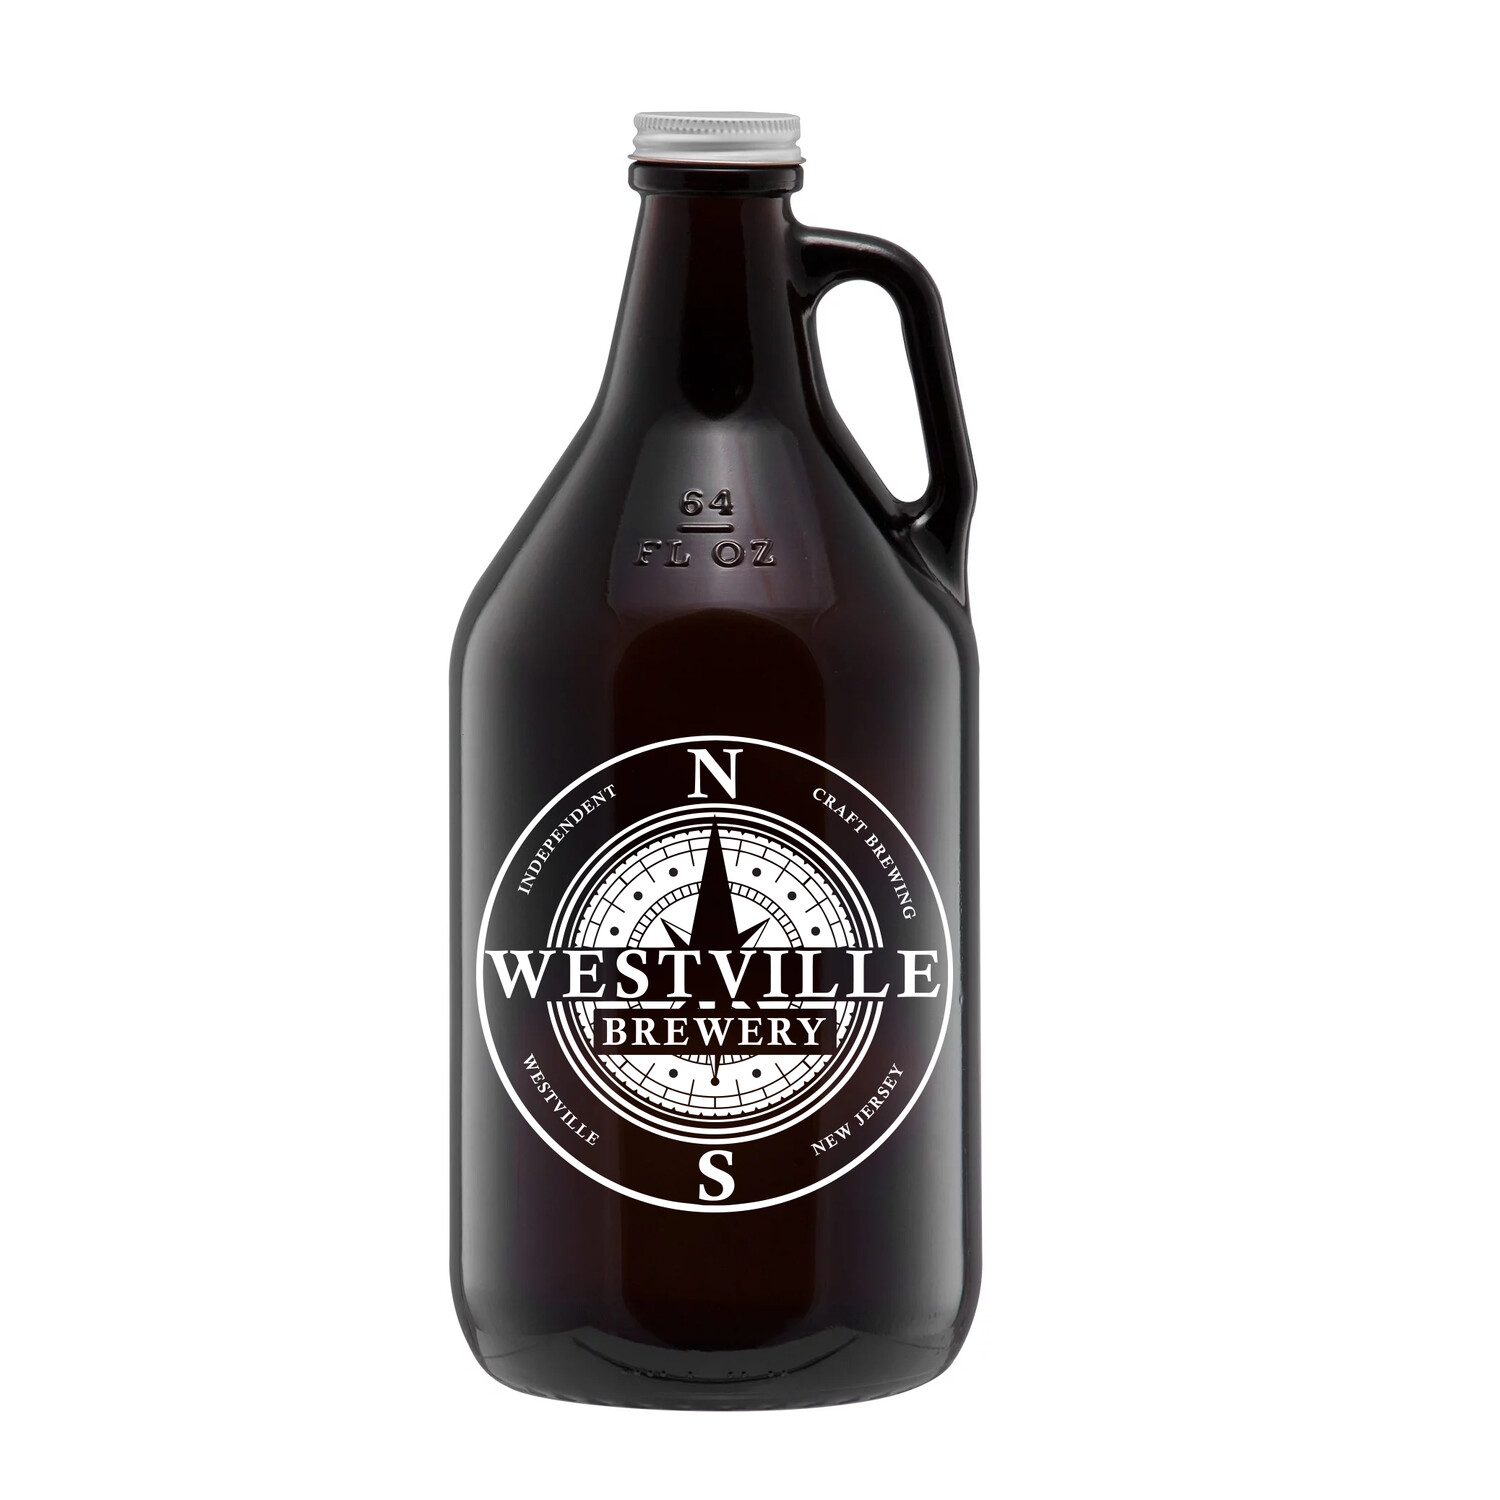 64 Oz. New Growler and Beer Purchase